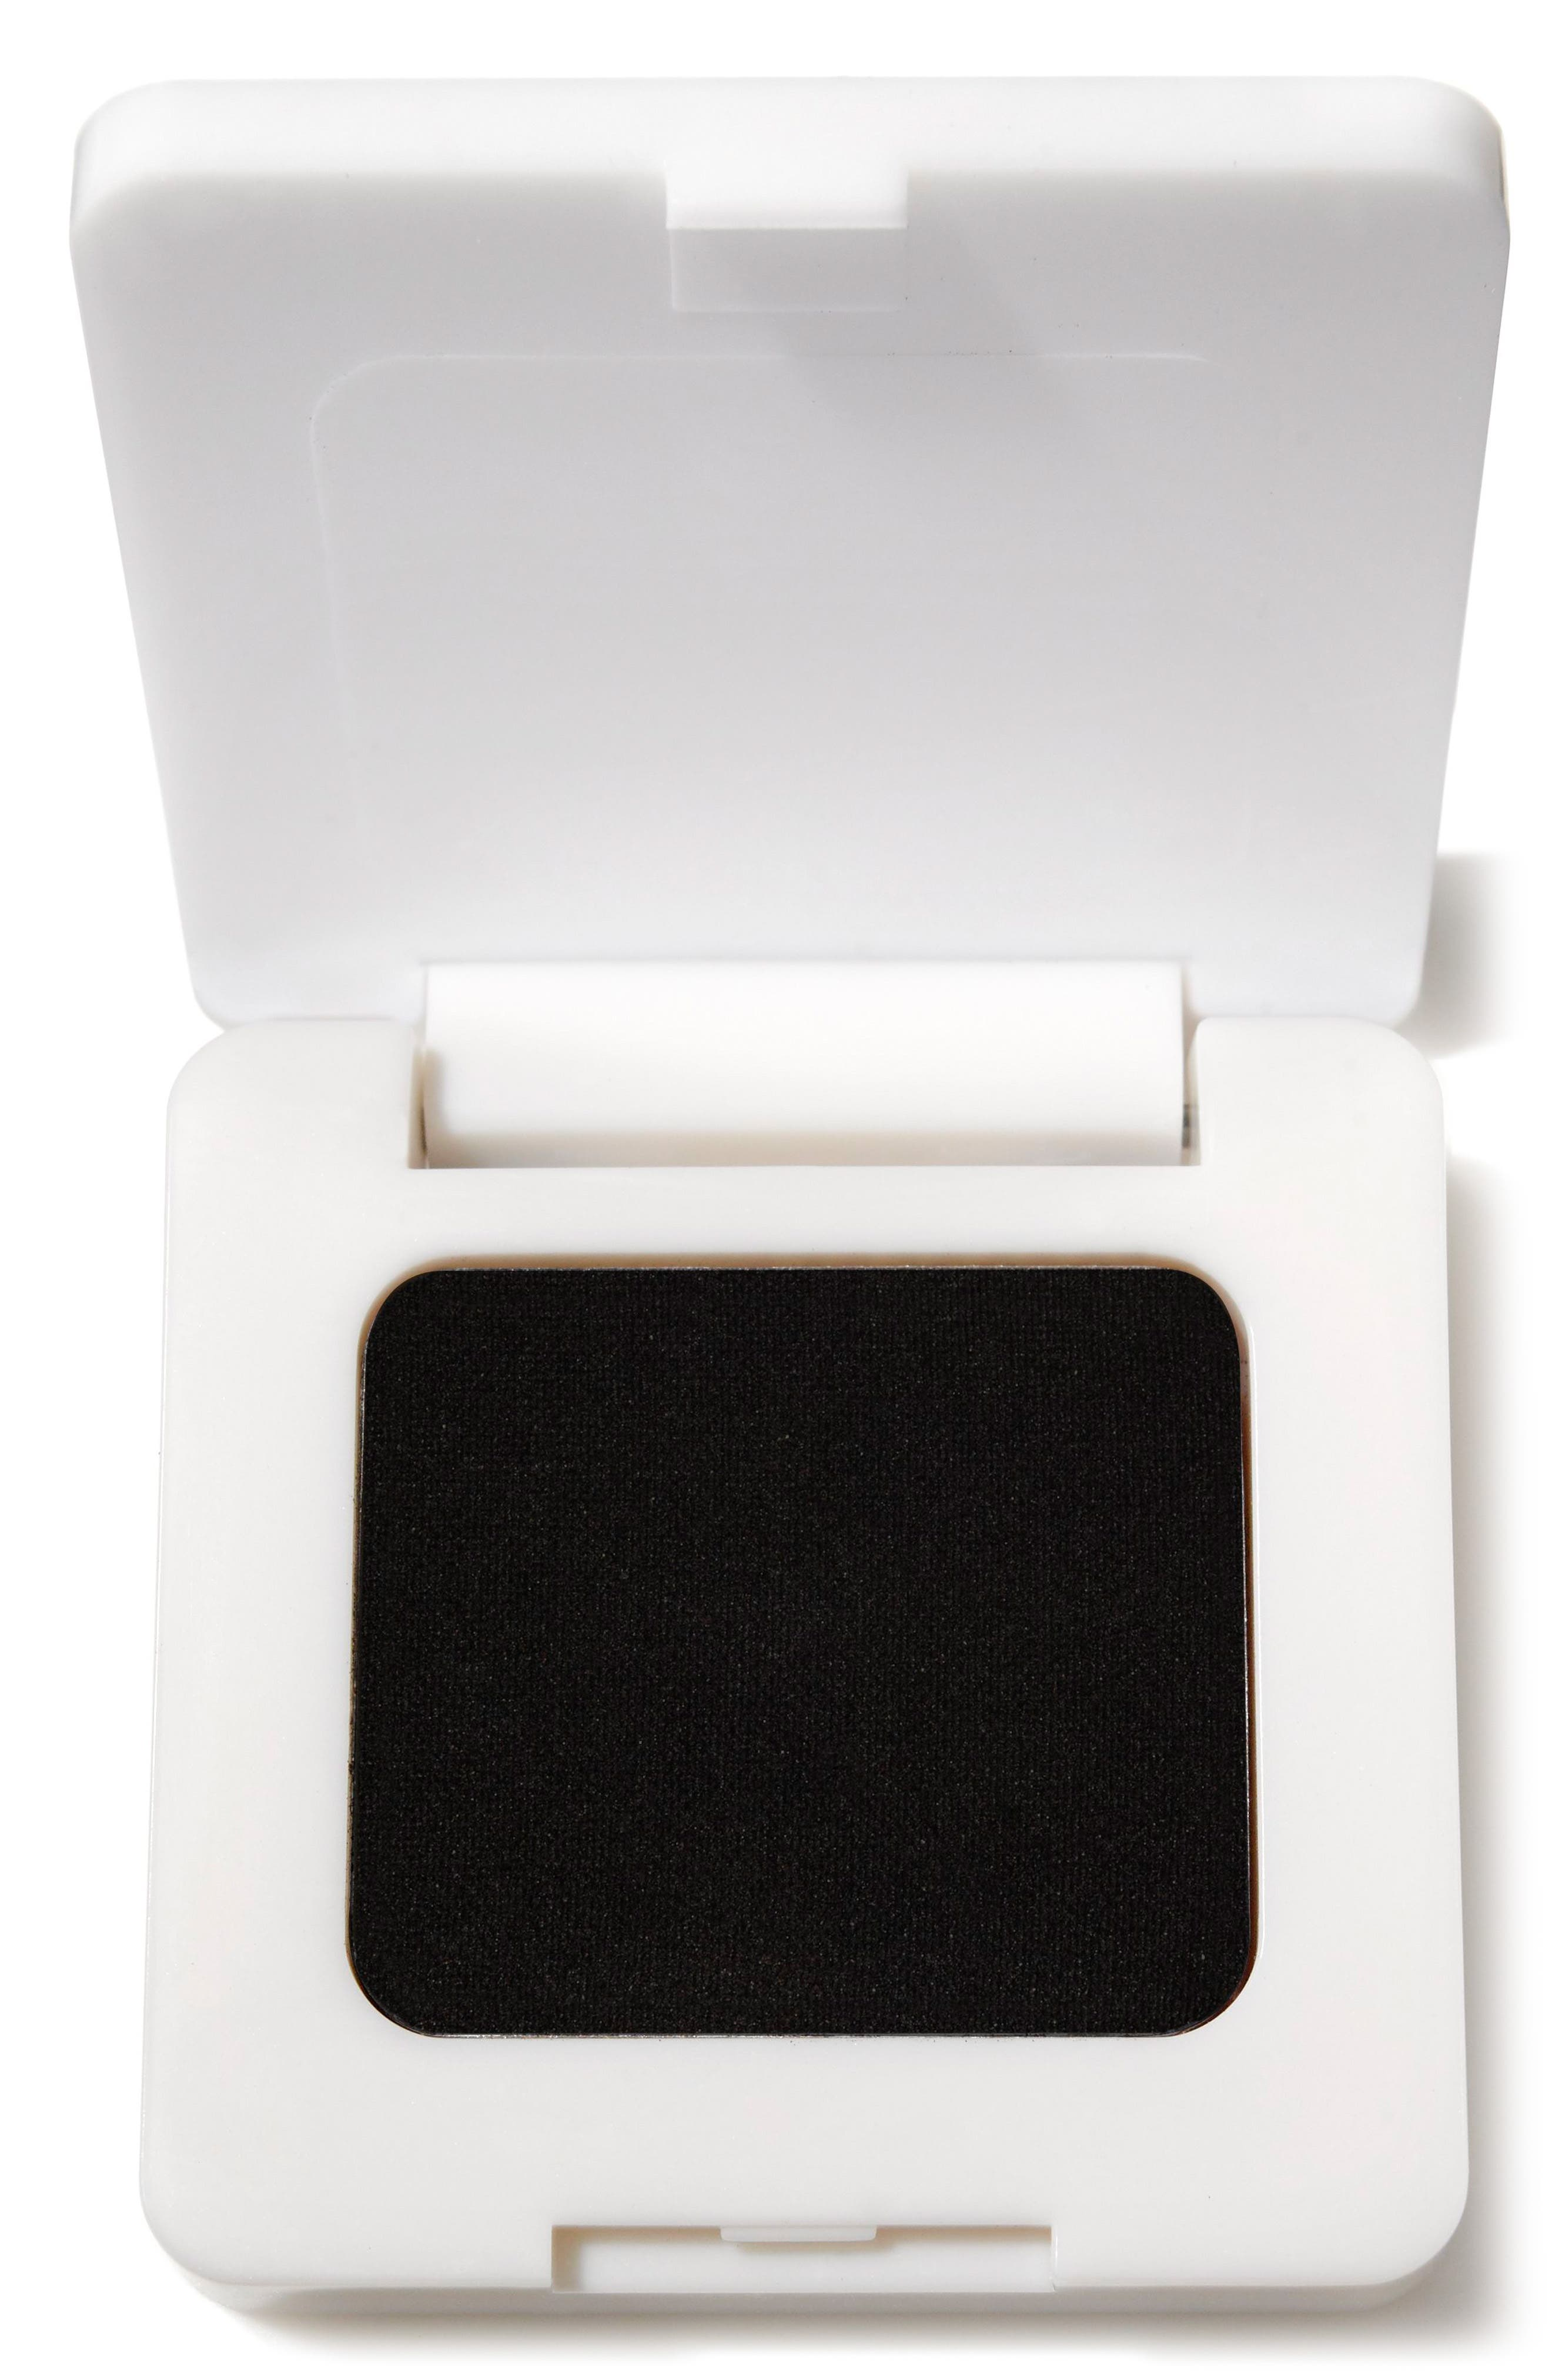 Alternate Image 1 Selected - RMS Beauty Vintage Cake Liner